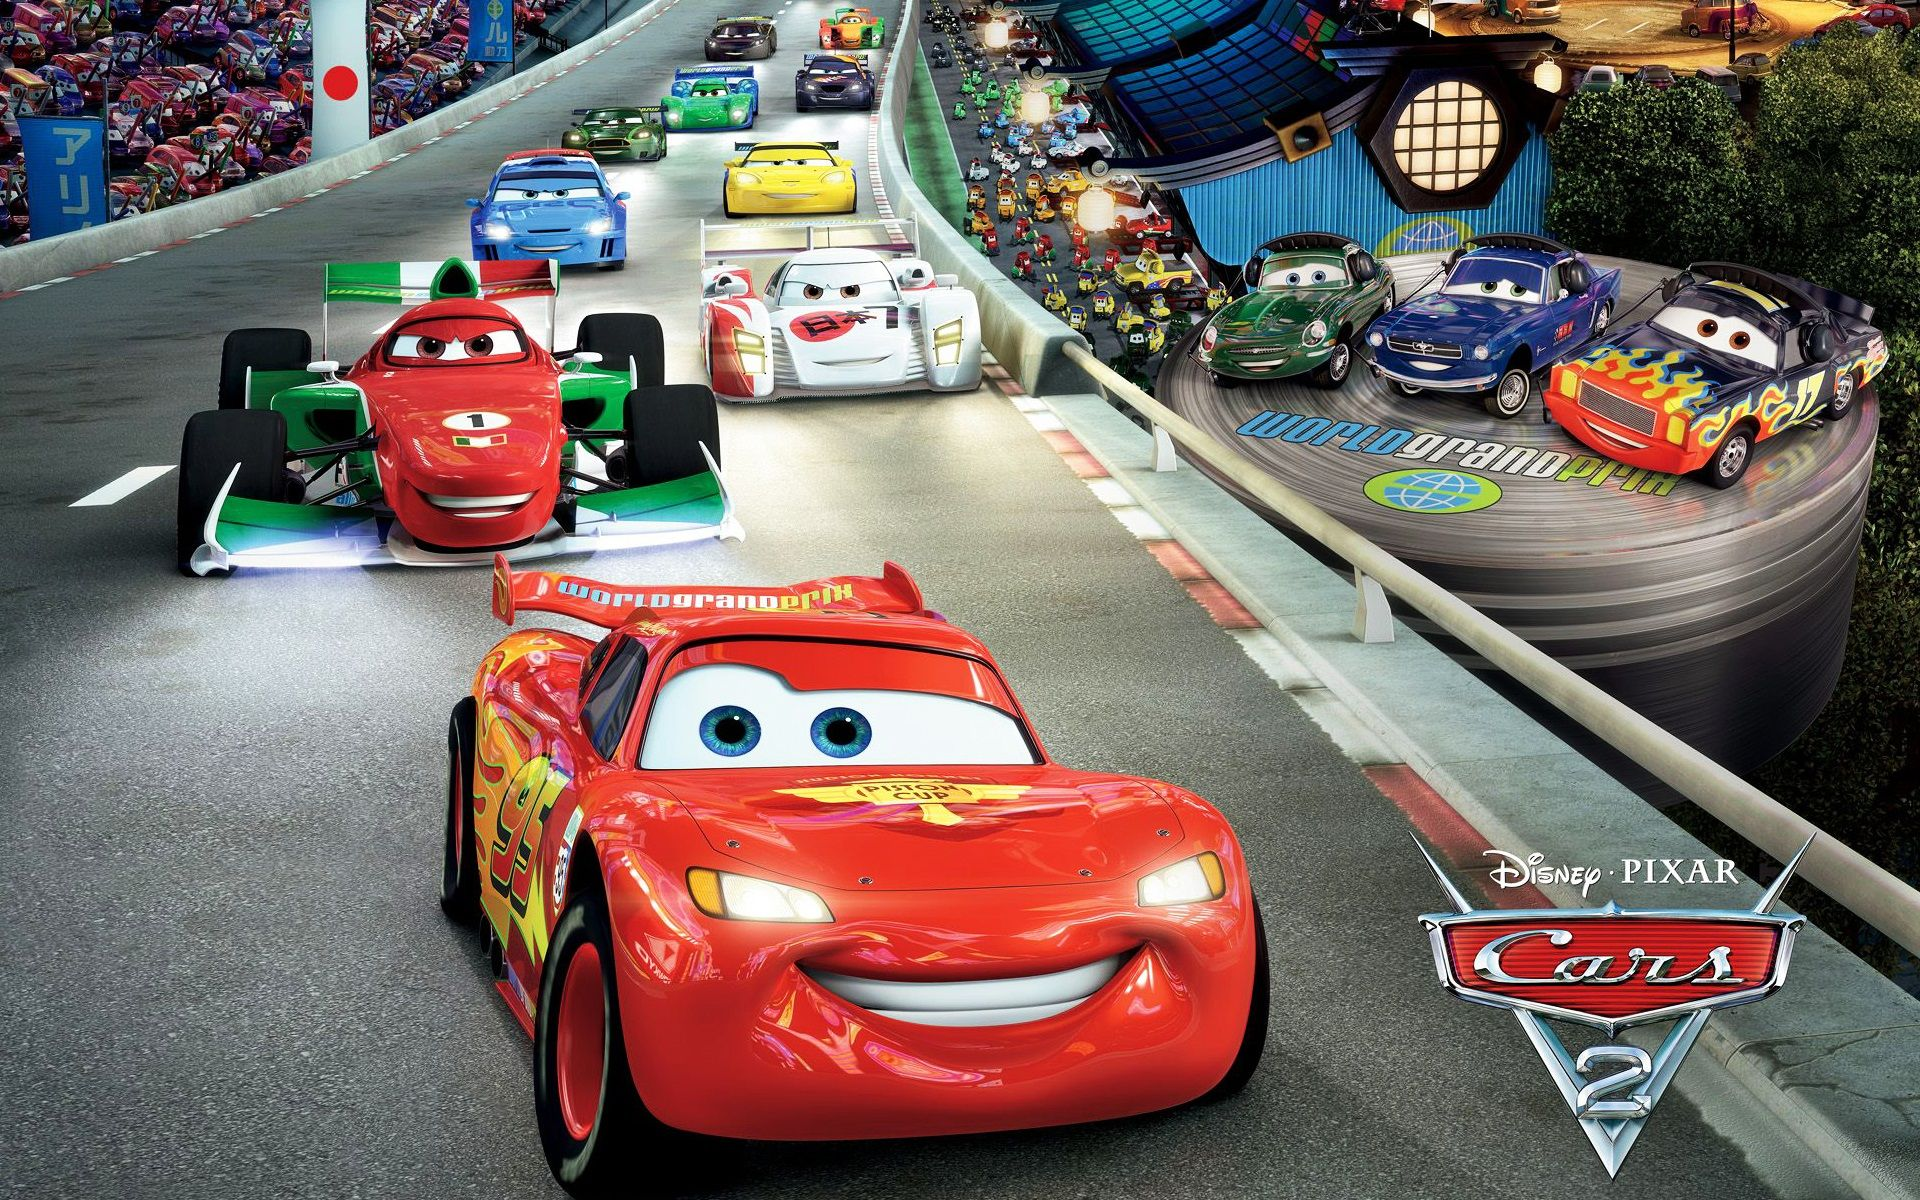 Cars Wallpaper Images In The Disney Pixar Cars Club For